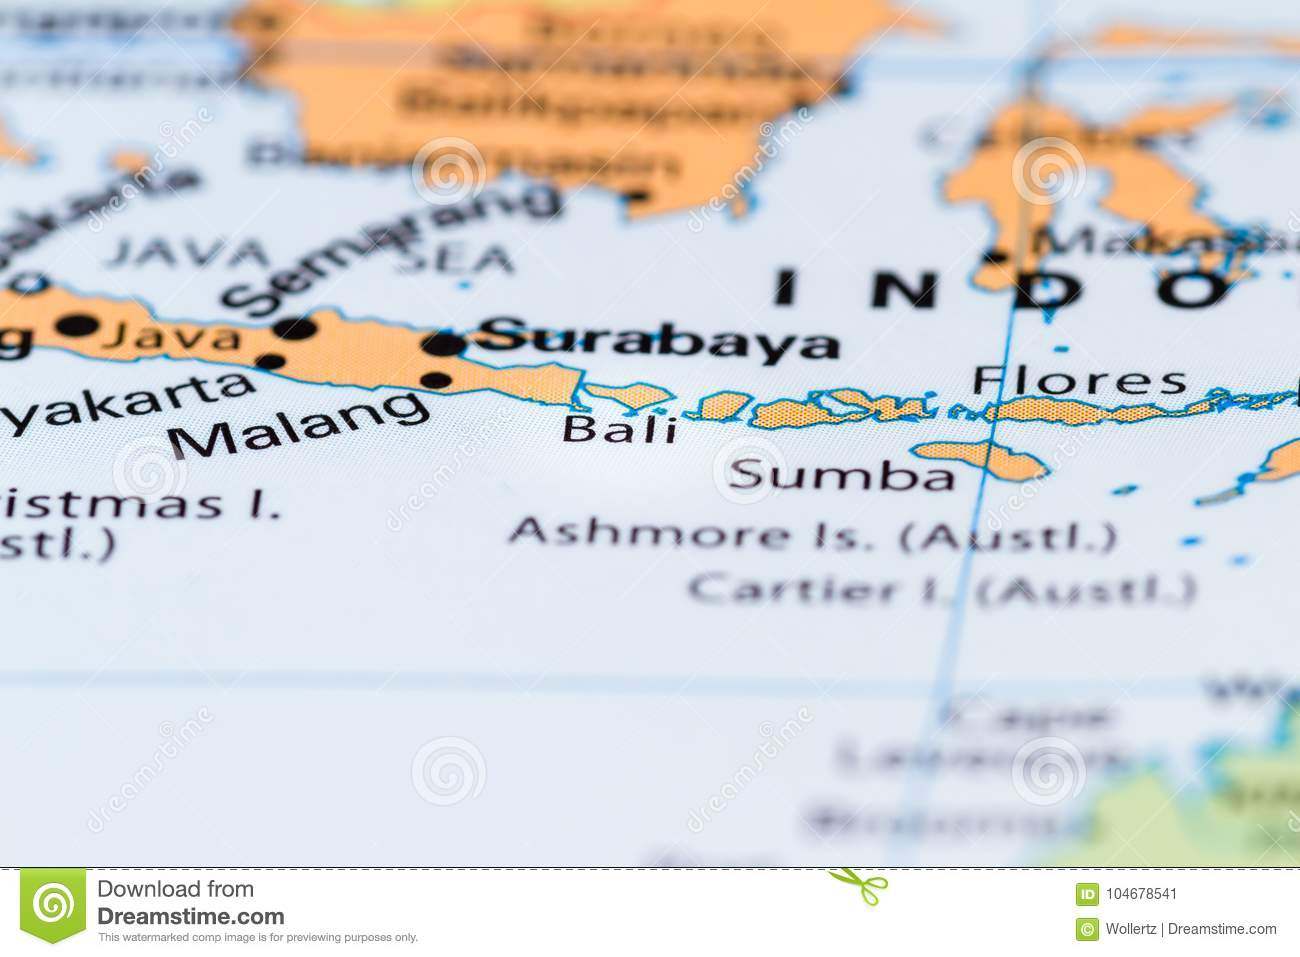 Bali on a map stock image. Image of islands, color, information ...